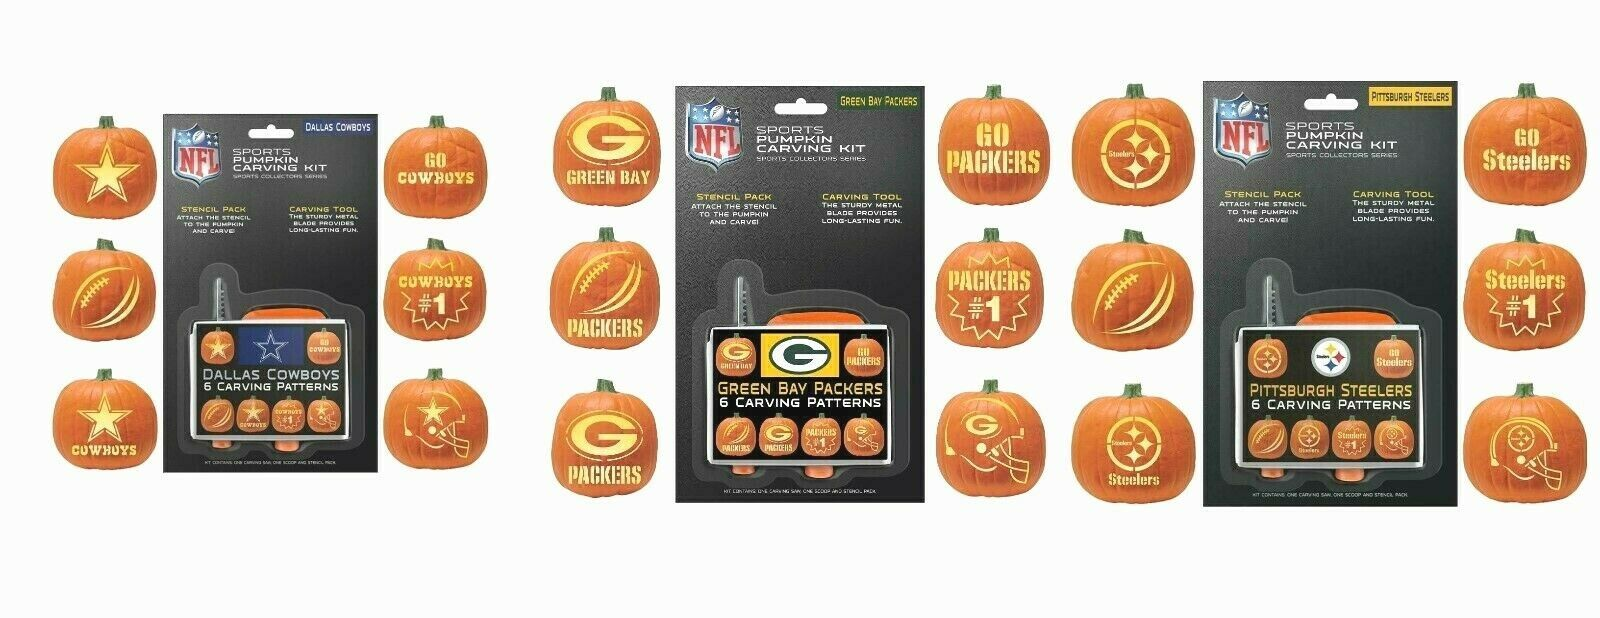 NFL TEAM HALLOWEEN PUMPKIN CARVING KIT WITH 6 STENCILS -CHOOSE YOUR TEAM - $7.90